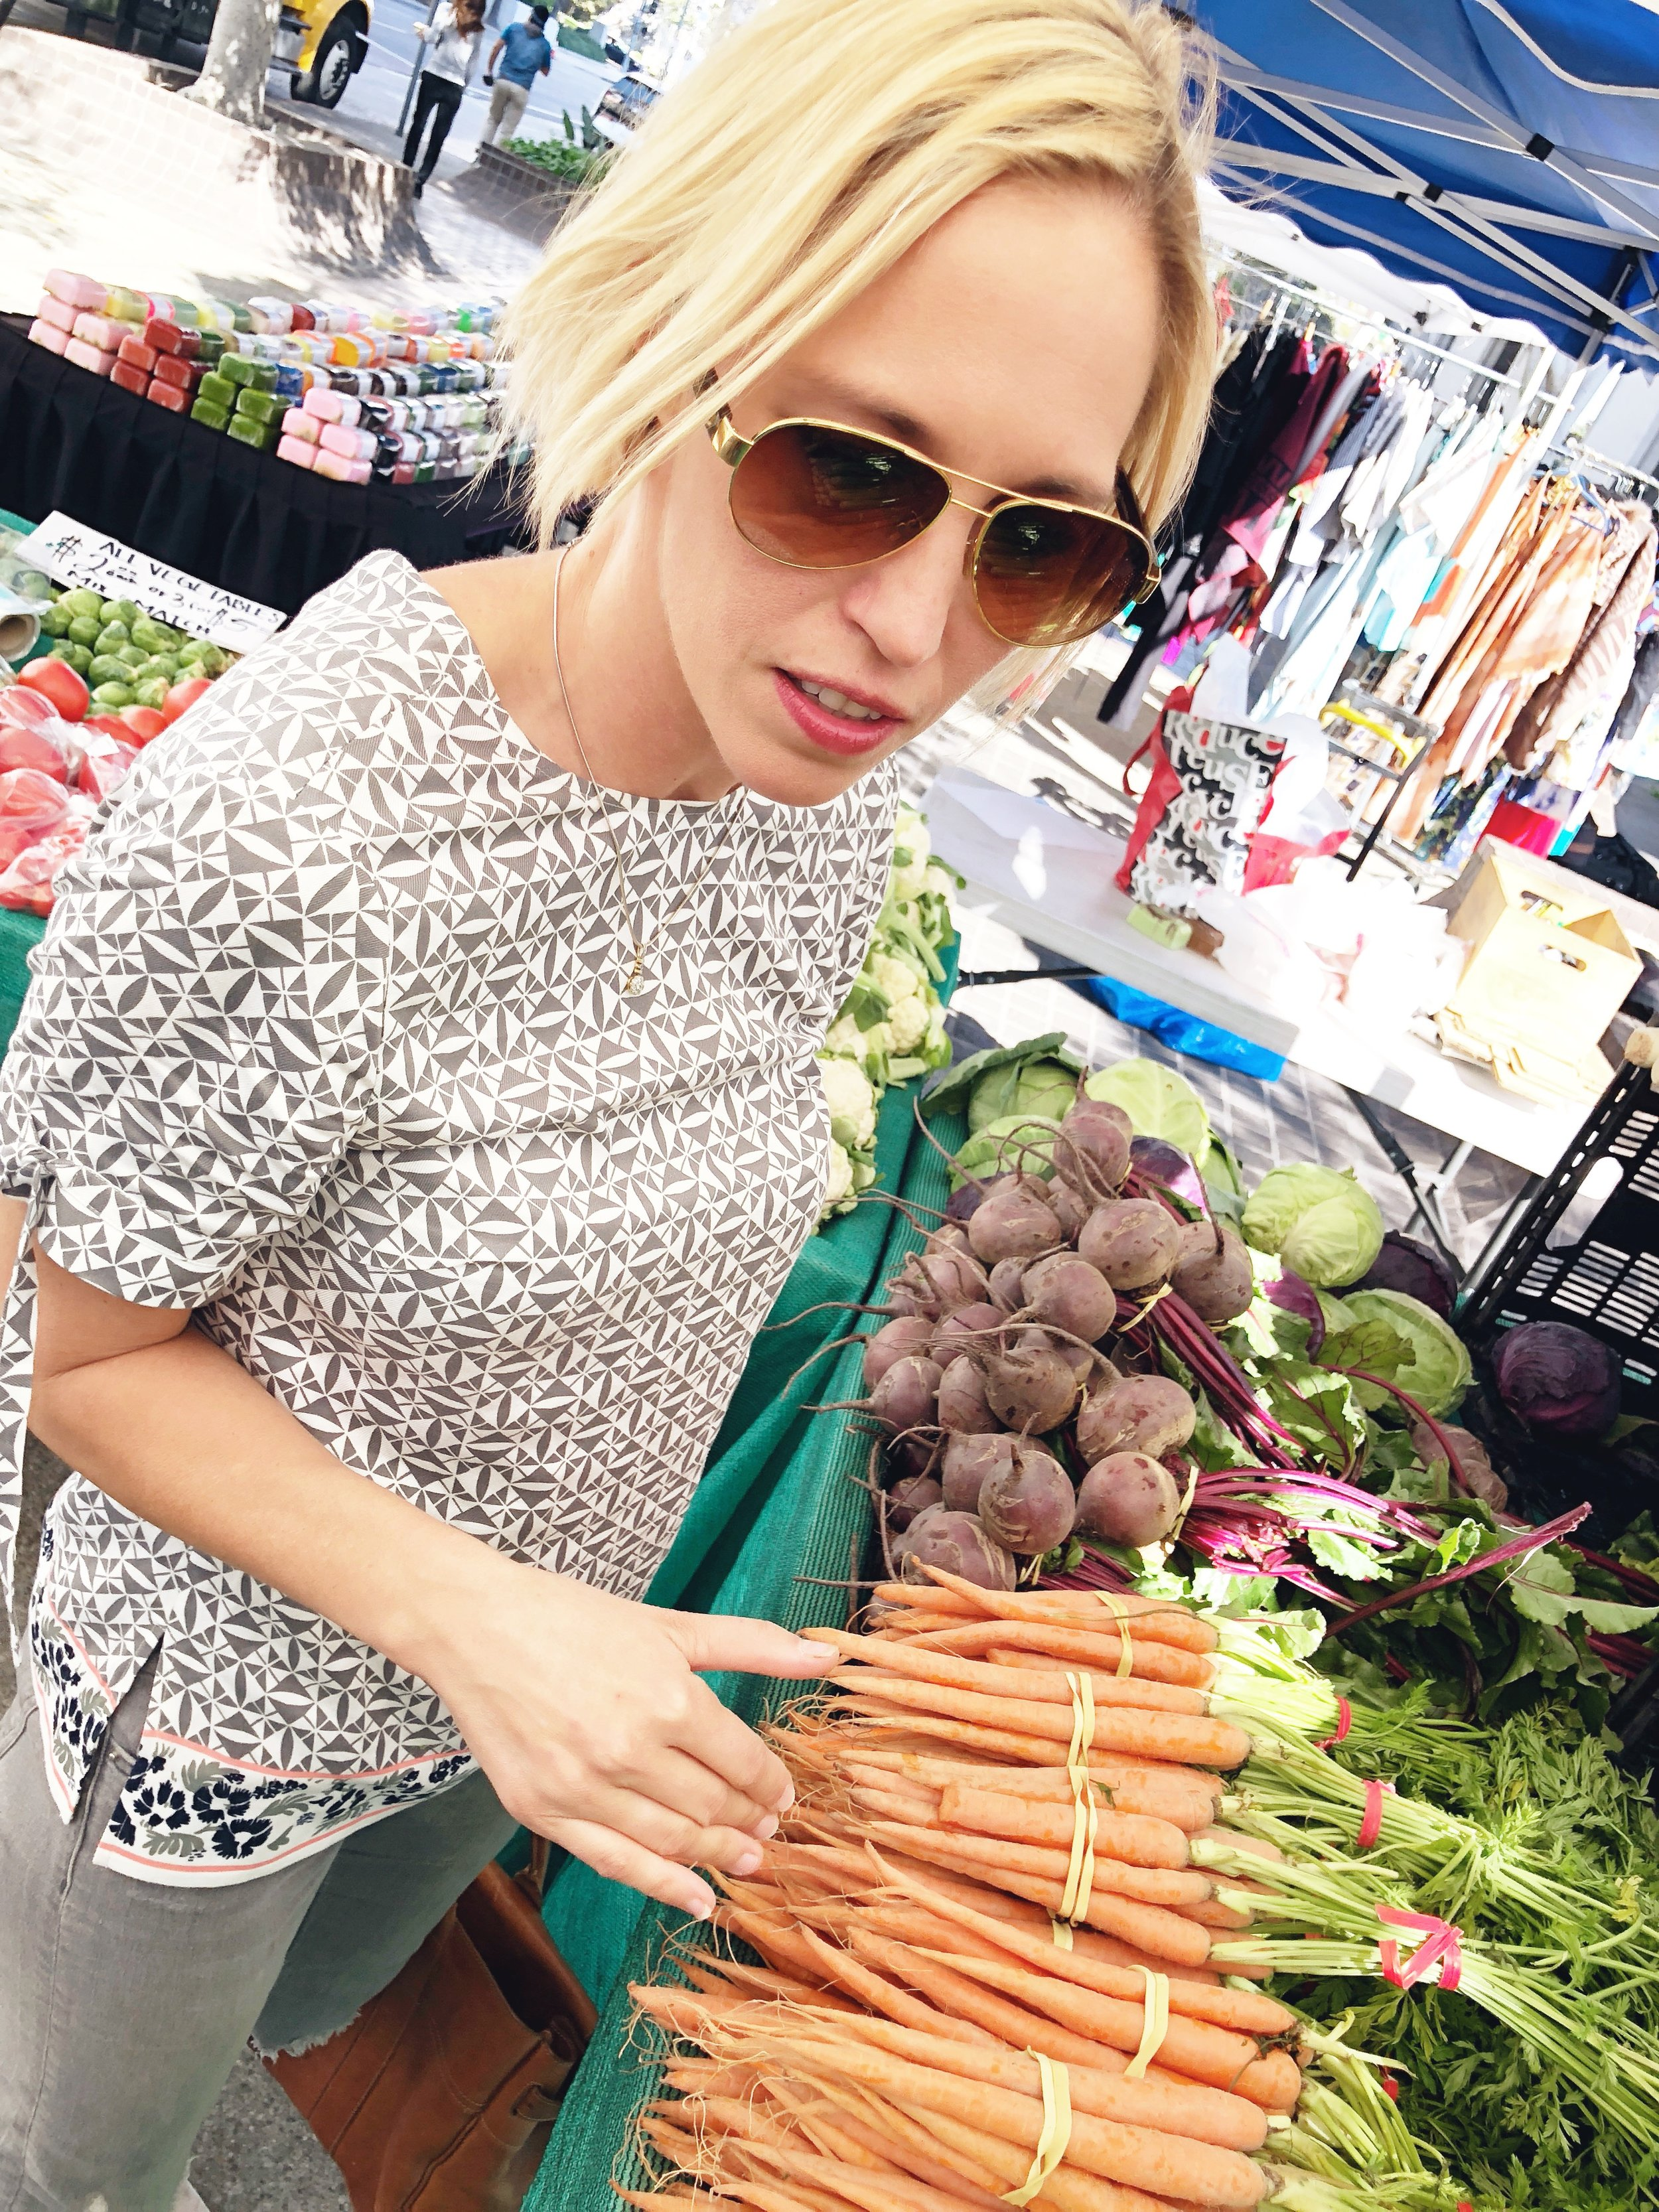 Kerstin explains what she looks for in shopping for fruits and vegetables during a trip to a Farmer's Market in Downtown Los Angeles.